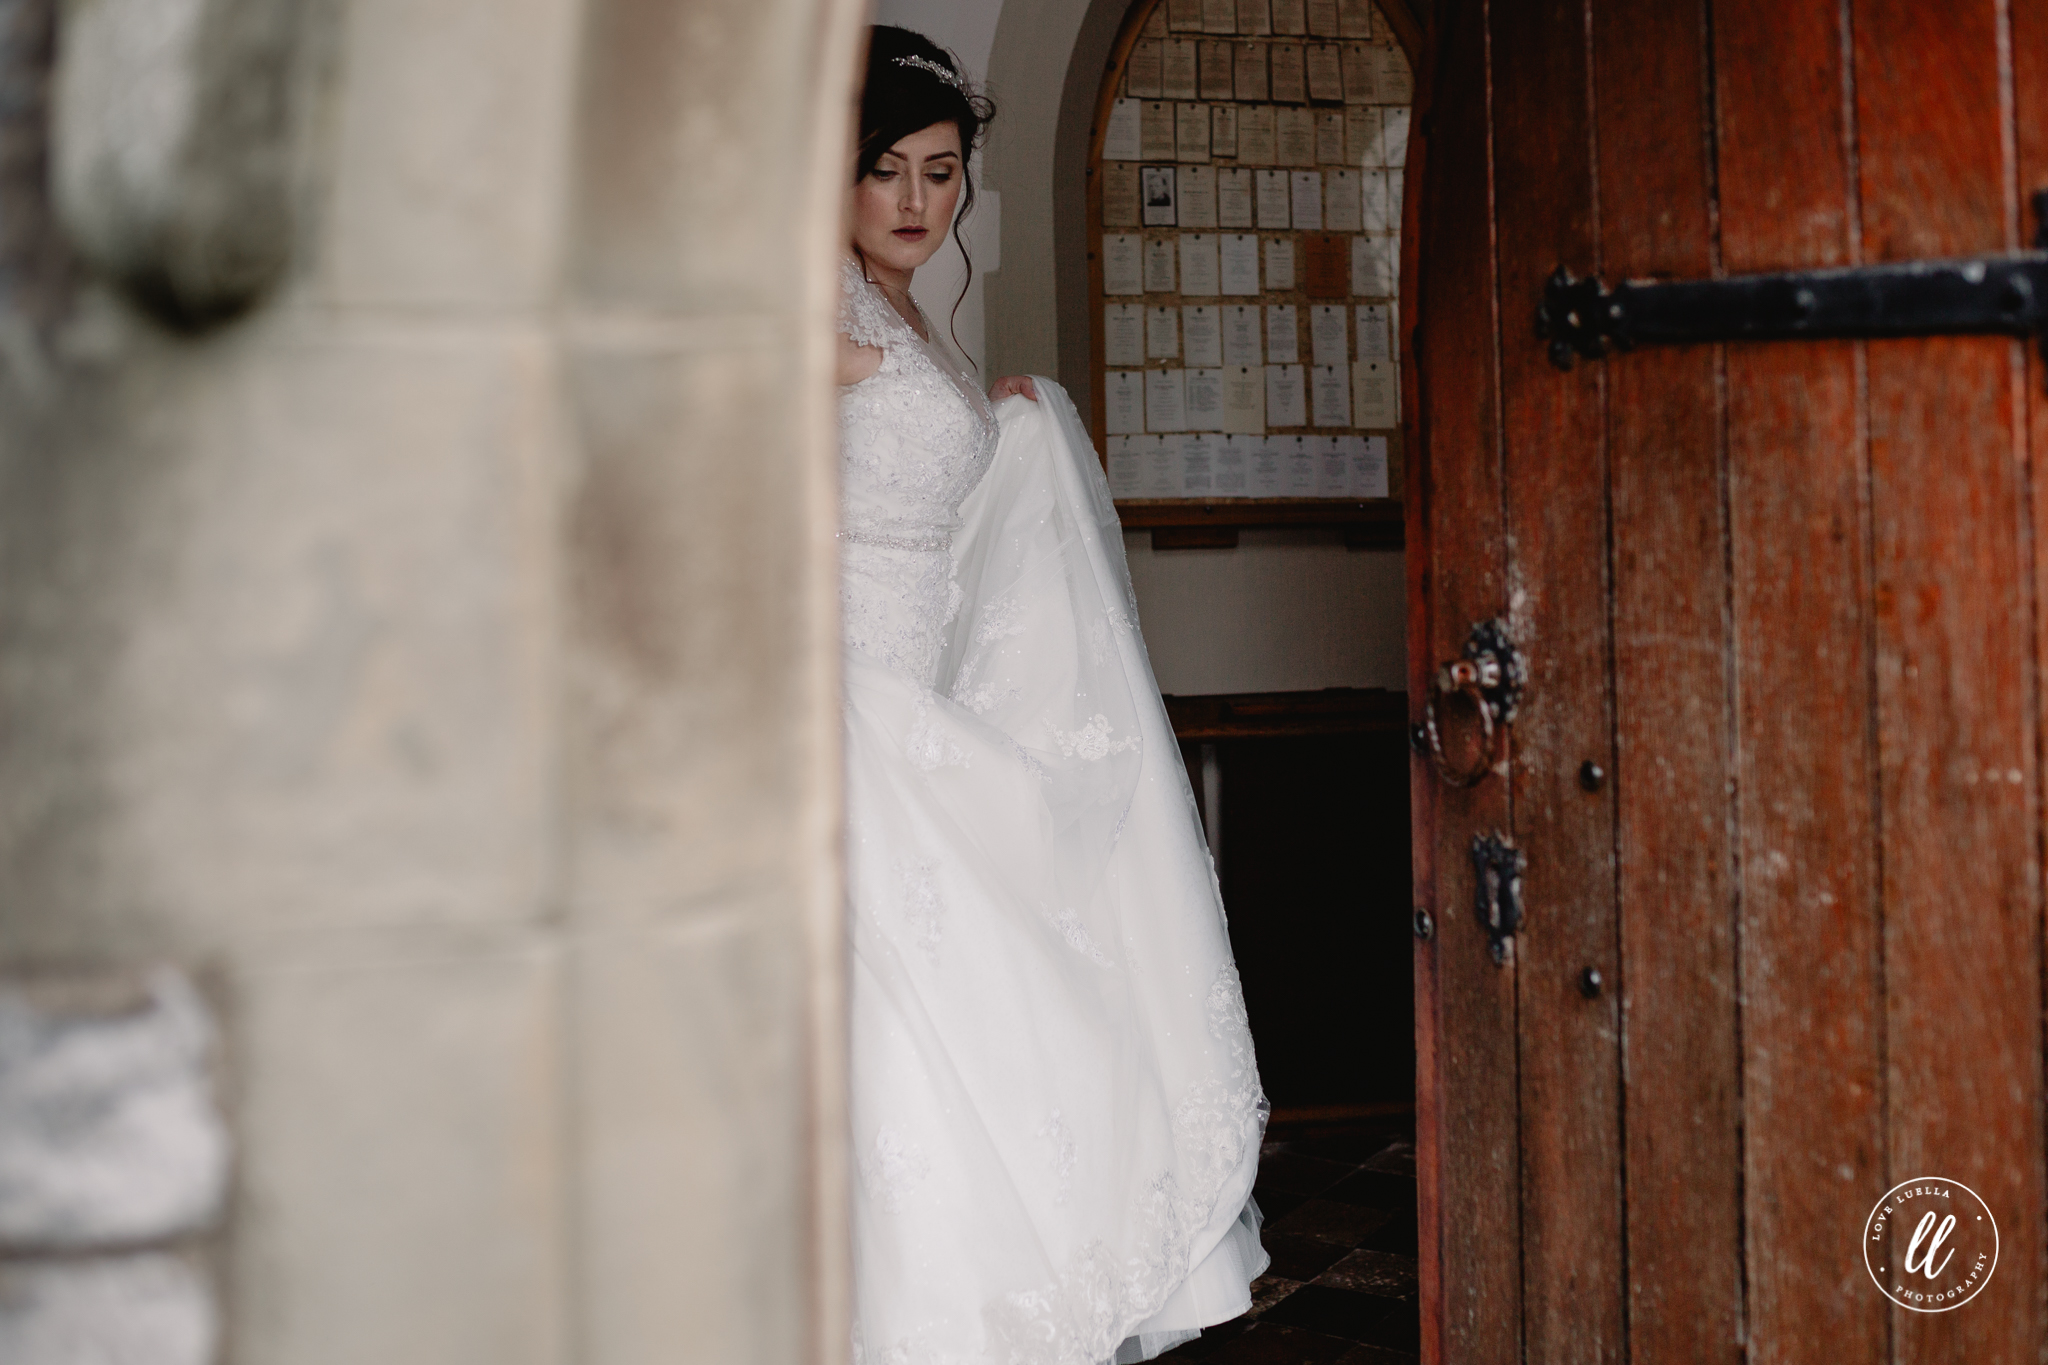 Bride arrival at The Pantasaph Friary, a quiet moment of reflection before the ceremony